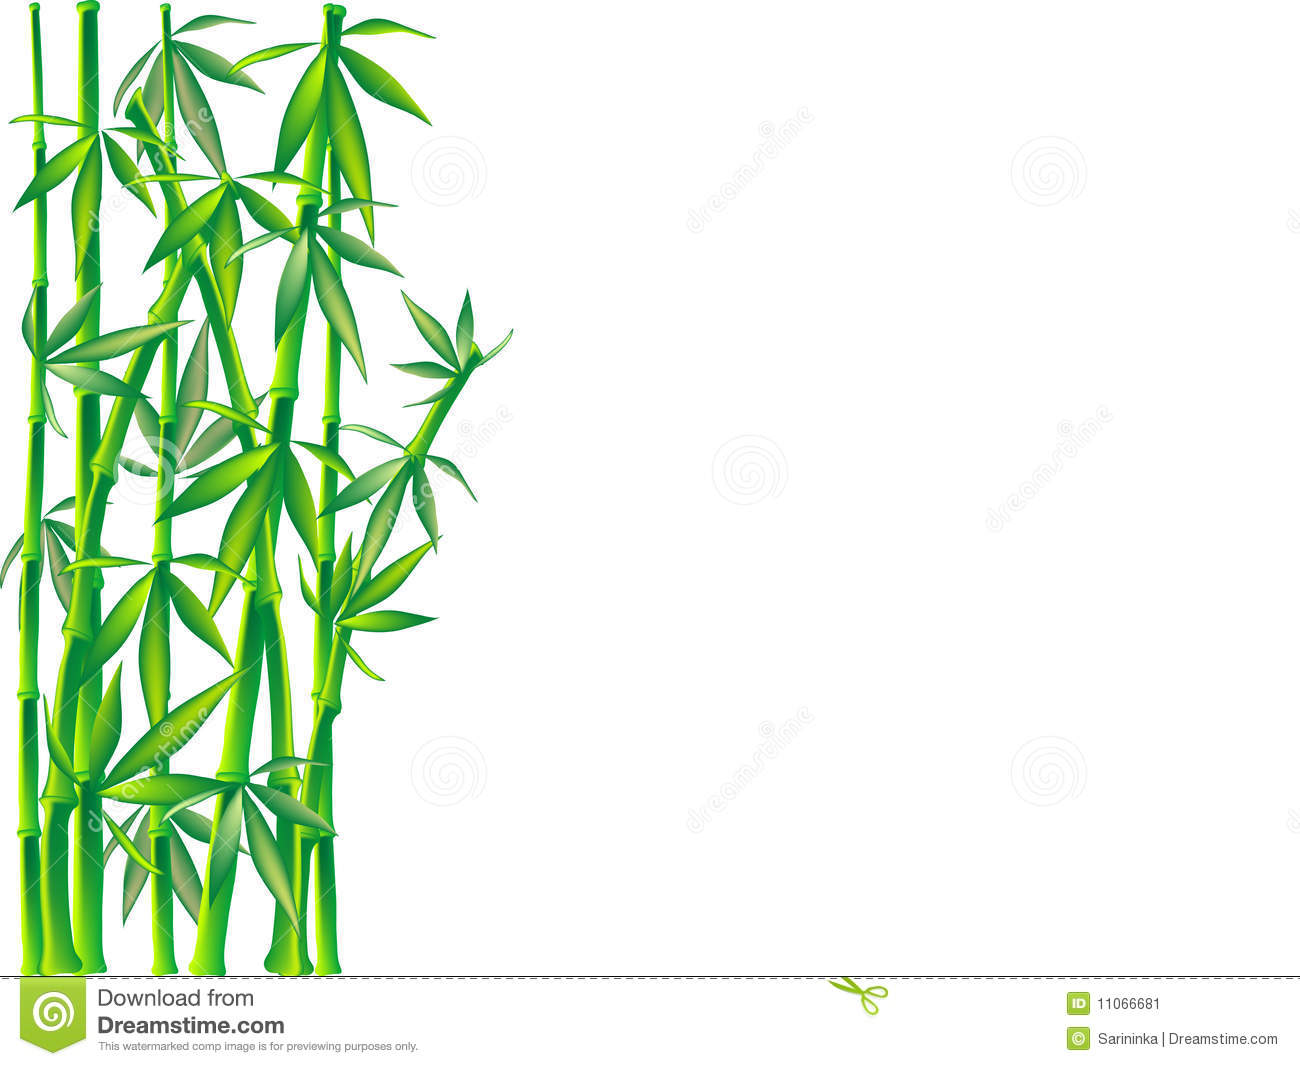 Chinese bamboo tree clipart picture black and white download Collection of Bamboo clipart | Free download best Bamboo clipart on ... picture black and white download